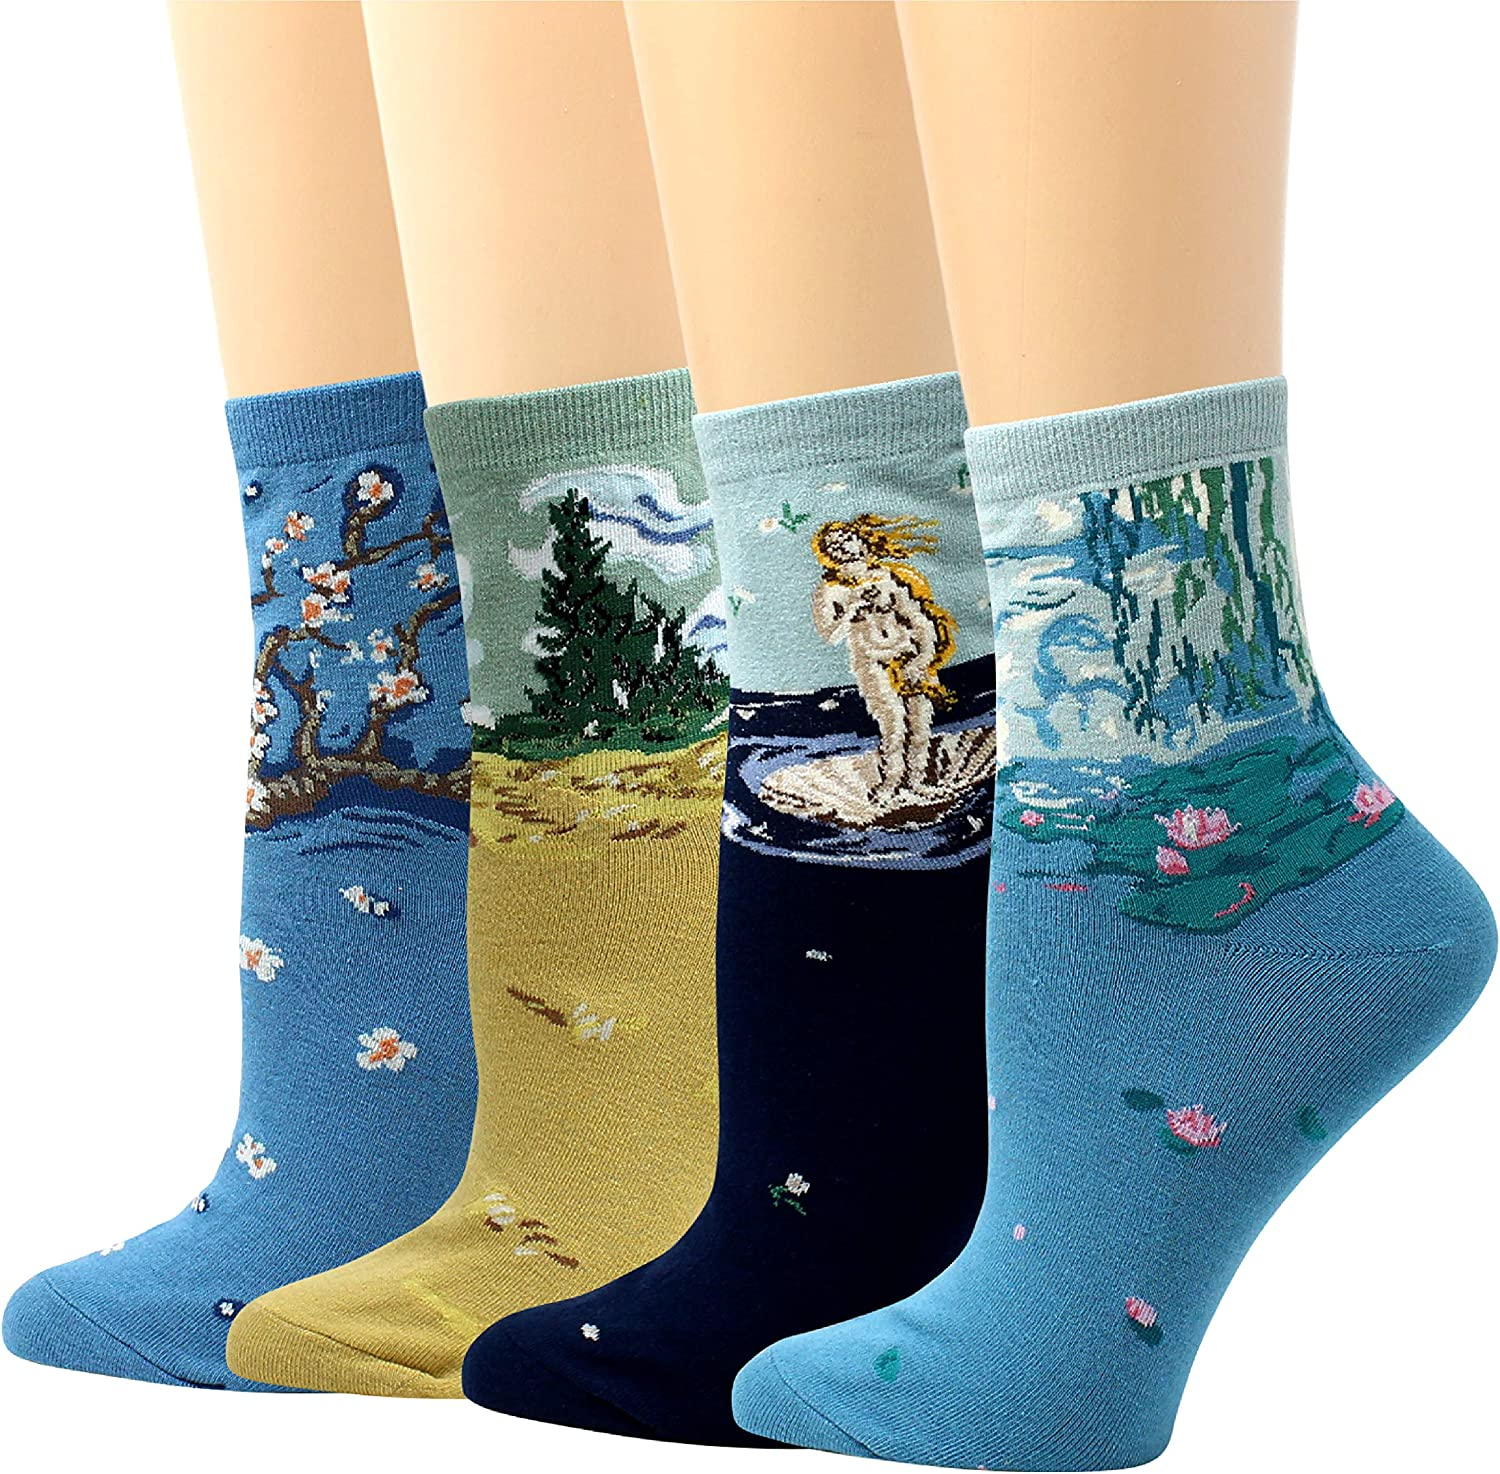 LIVEBEAR 4/8 Pairs Womens Cute Famous Paintings Art Statues Novelty Casual Cotton Crew Socks Made In Korea, Gift